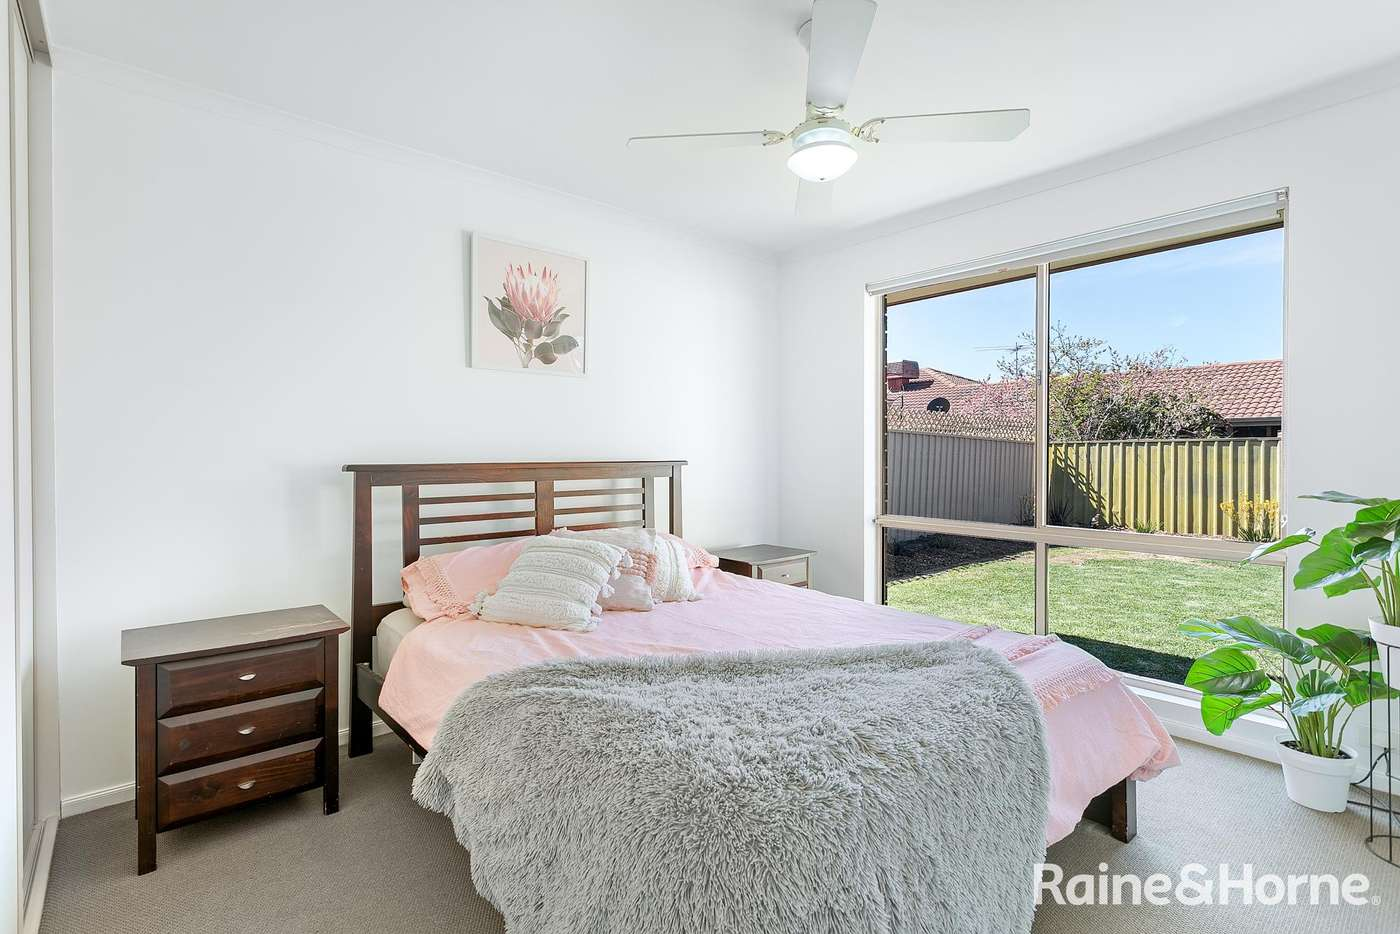 Fifth view of Homely house listing, 2 Bella Court, Morphett Vale SA 5162